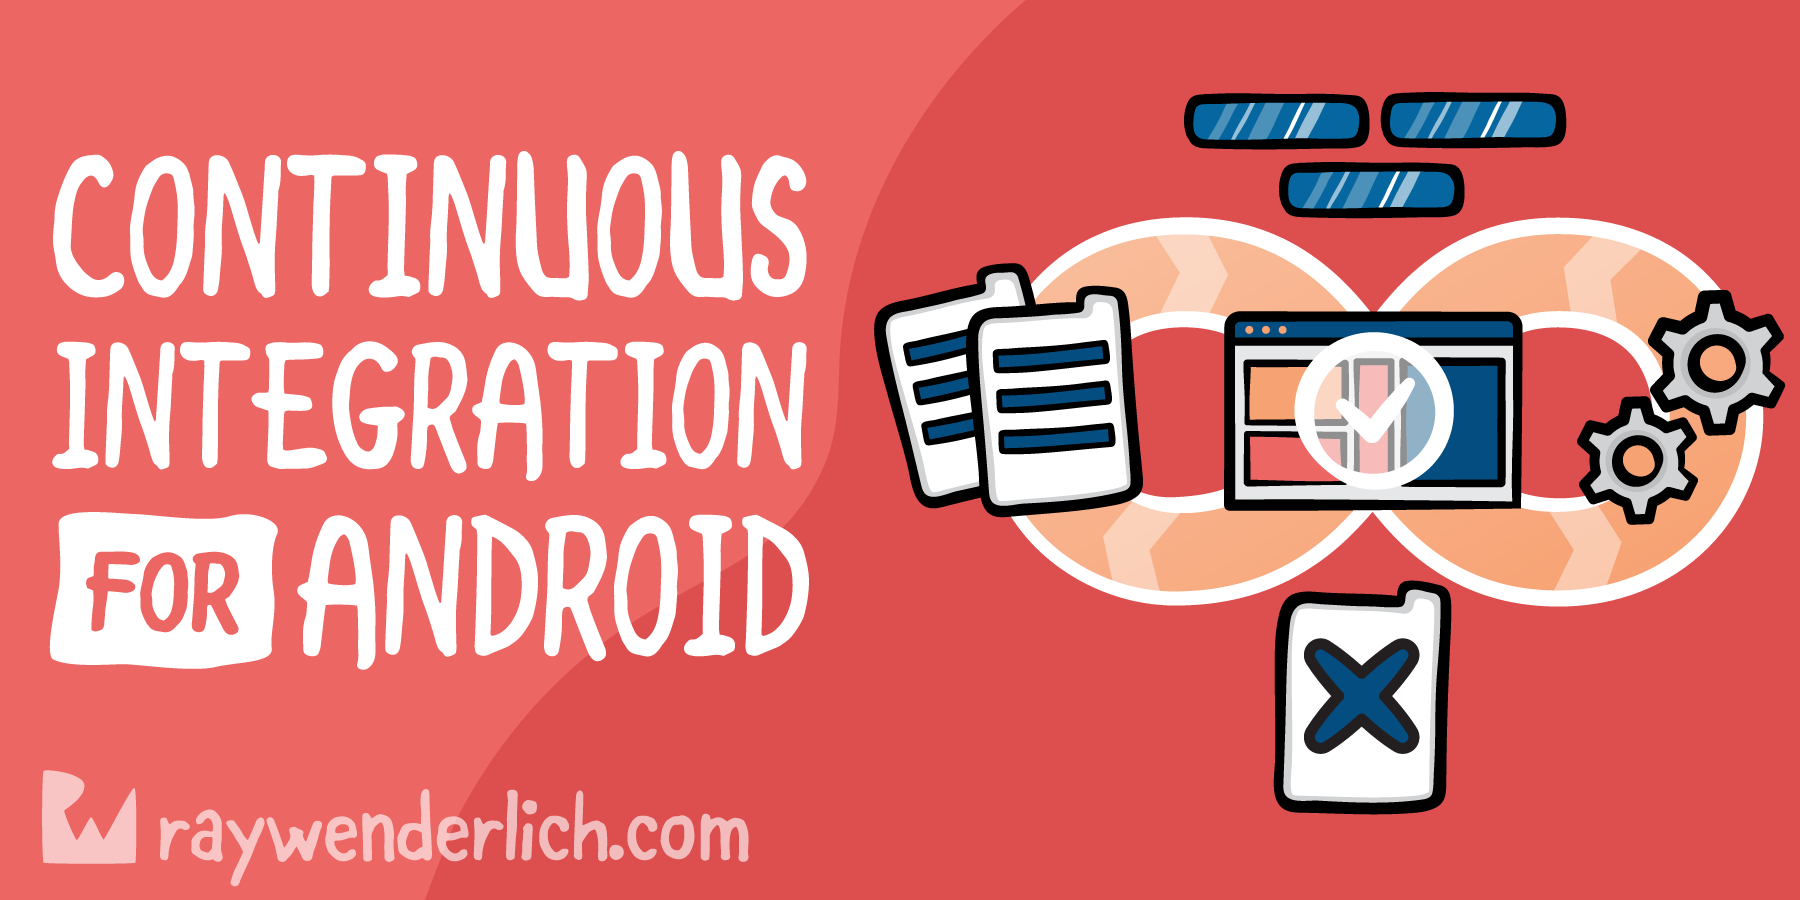 Image of article 'Continuous Integration for Android'